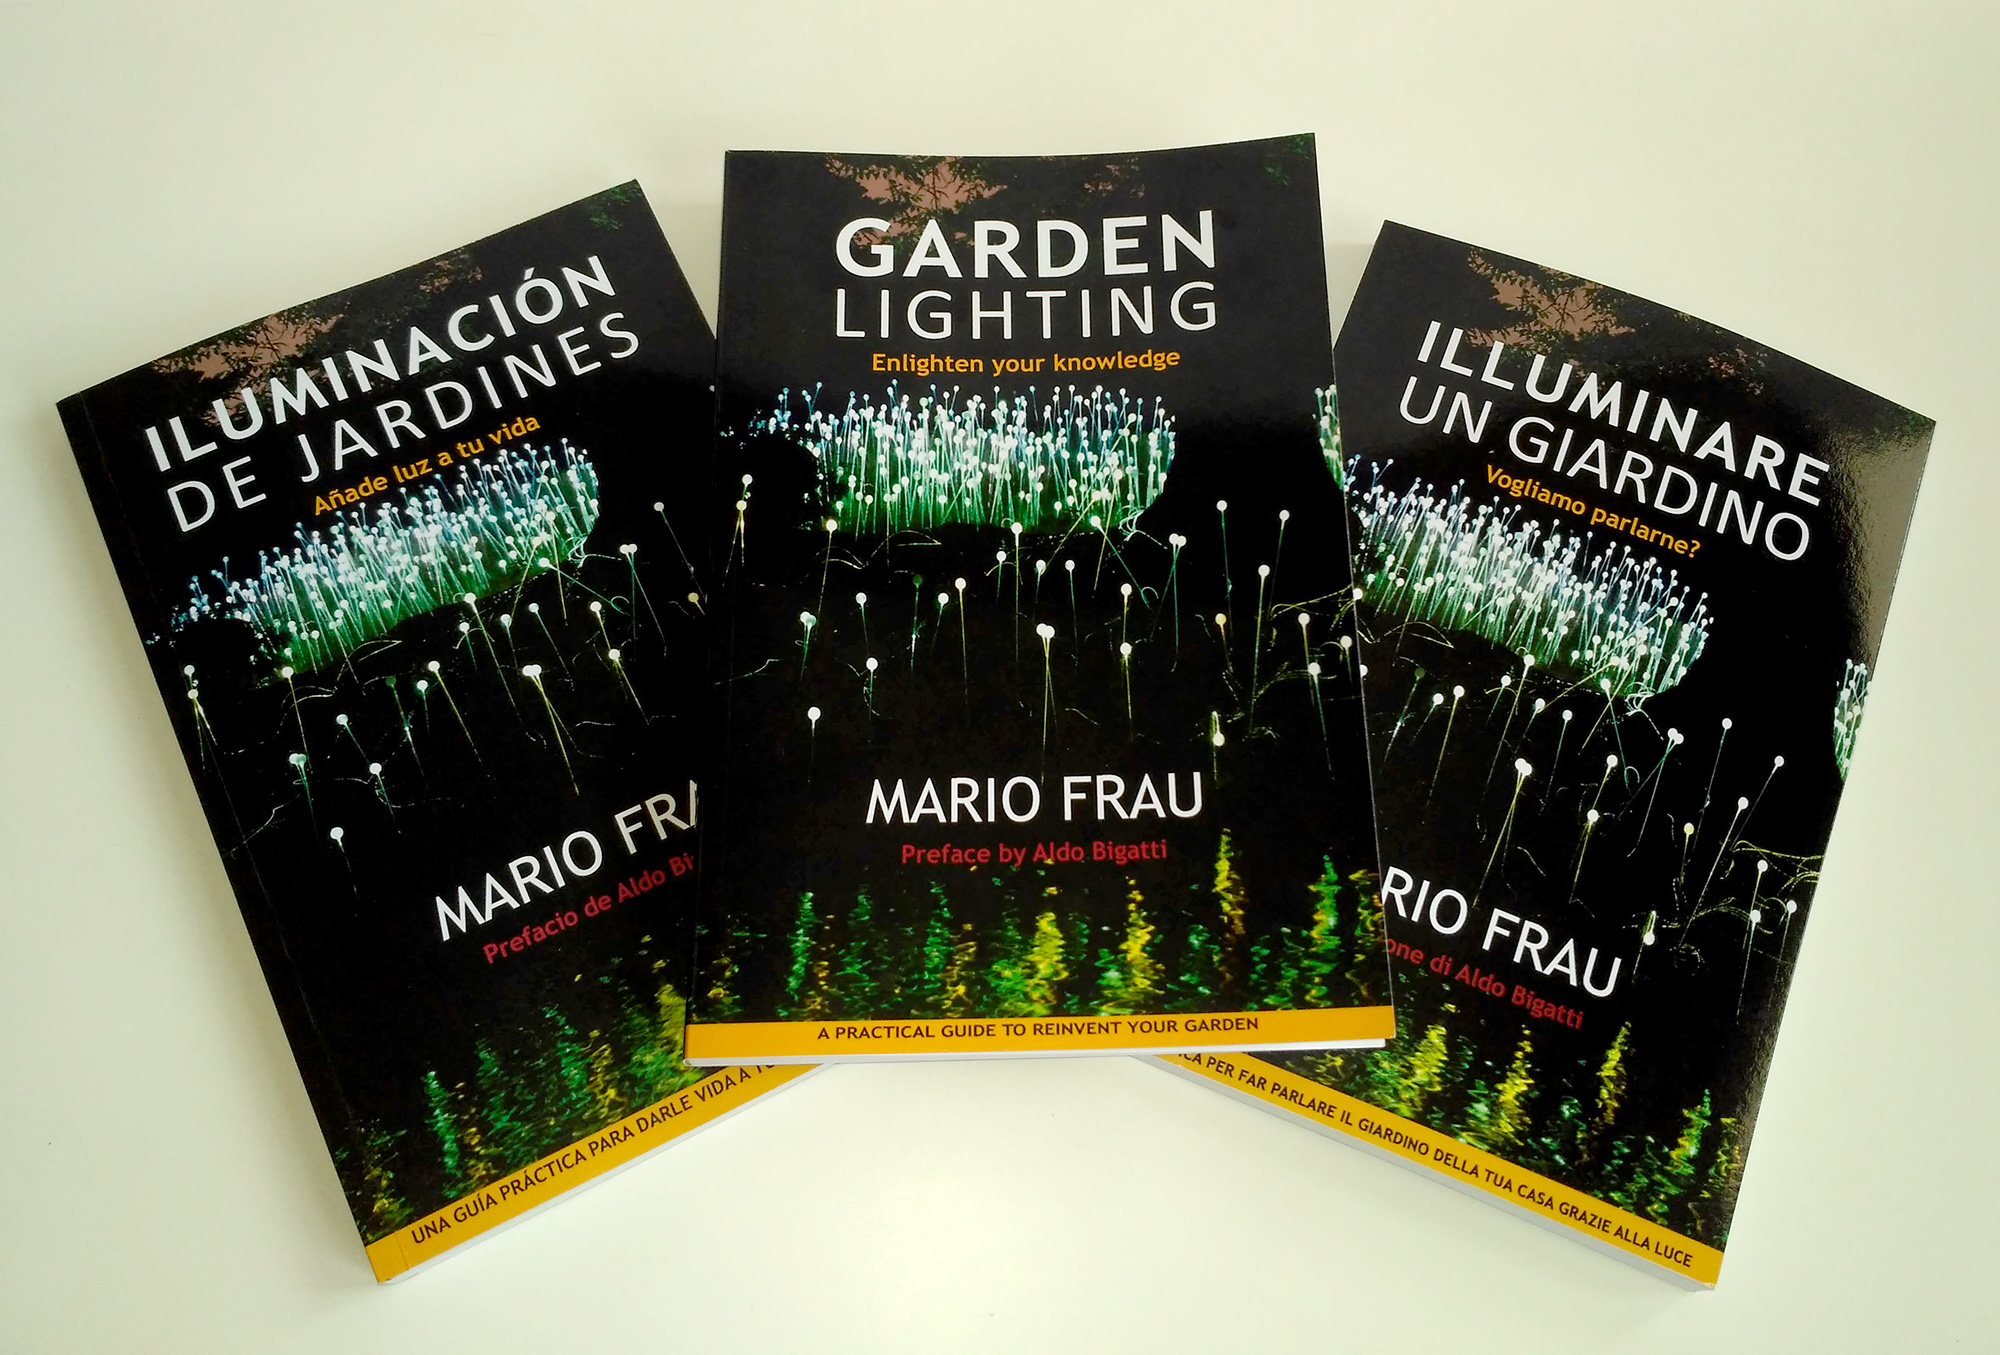 Garden Lighting books